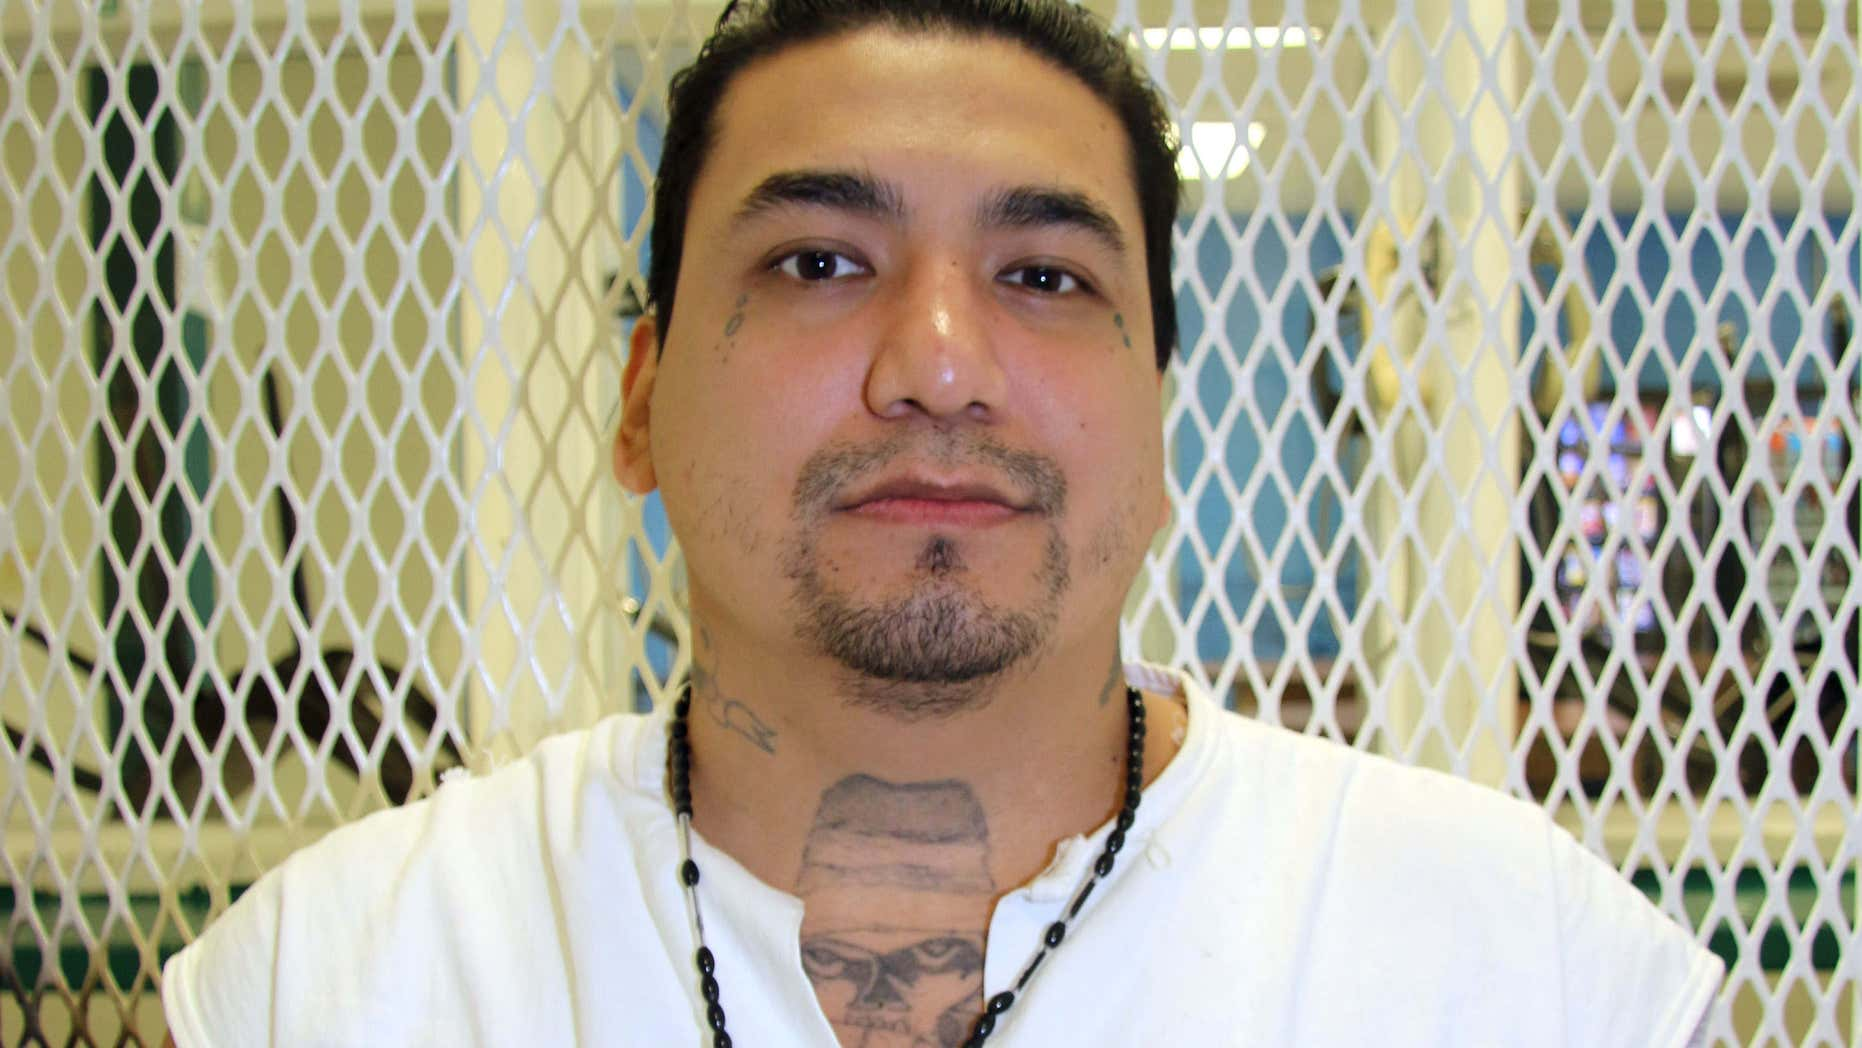 Sept. 2, 2015: Death row inmate Juan Garcia is photographed in a visiting cage at the Texas Department of Criminal Justice Polunsky Unit near Livingston, Texas.